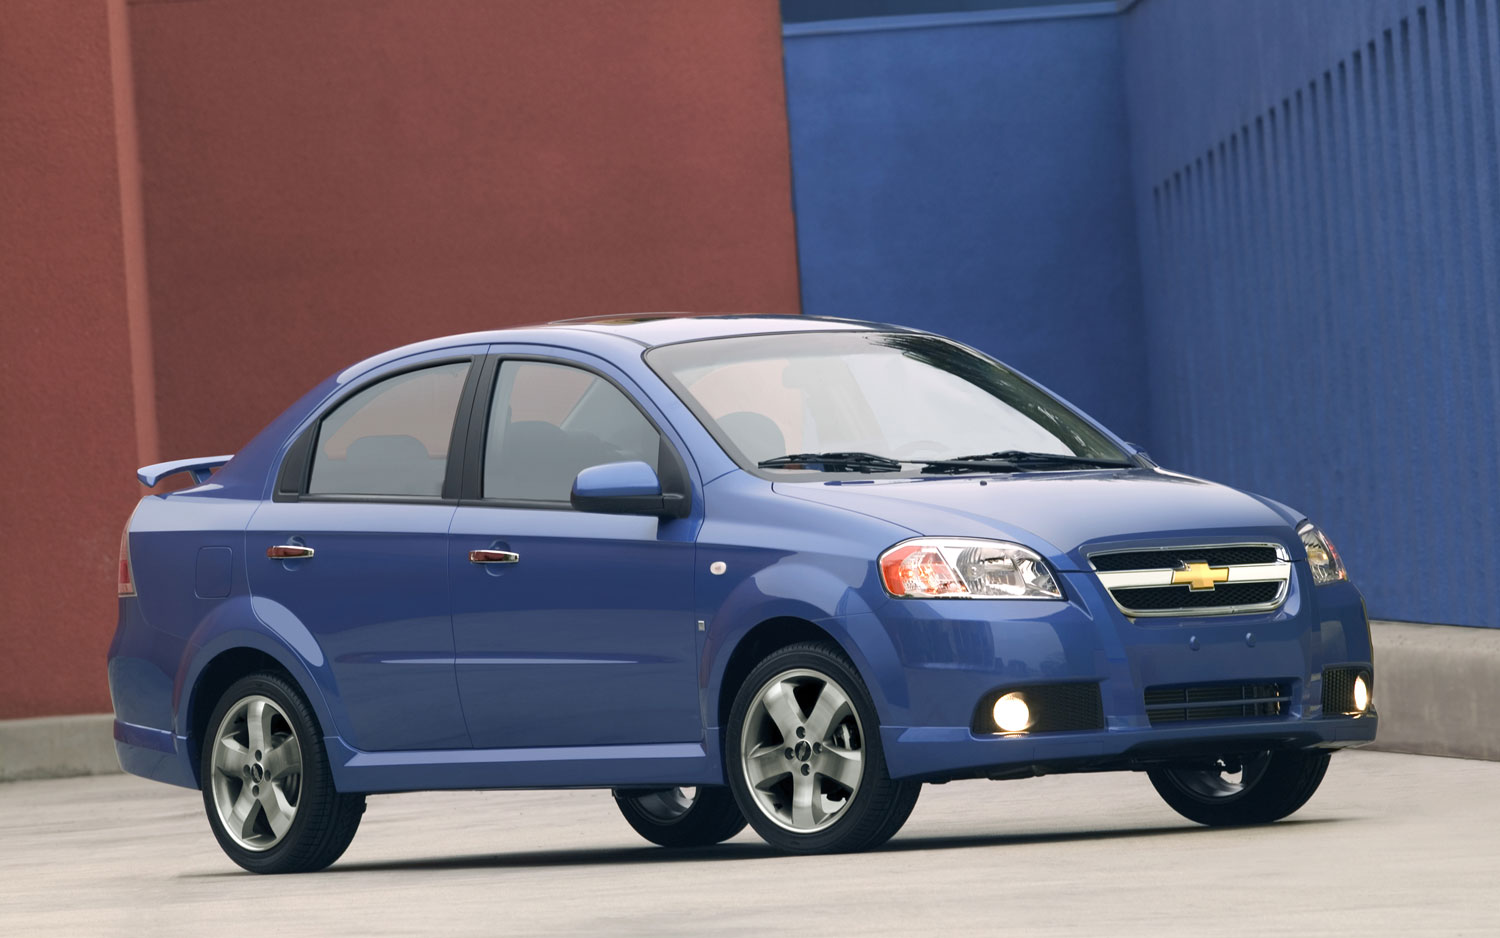 https://enthusiastnetwork.s3.amazonaws.com/uploads/sites/5/2014/05/2007-chevrolet-aveo-front-three-quarter.jpg?impolicy=entryimage